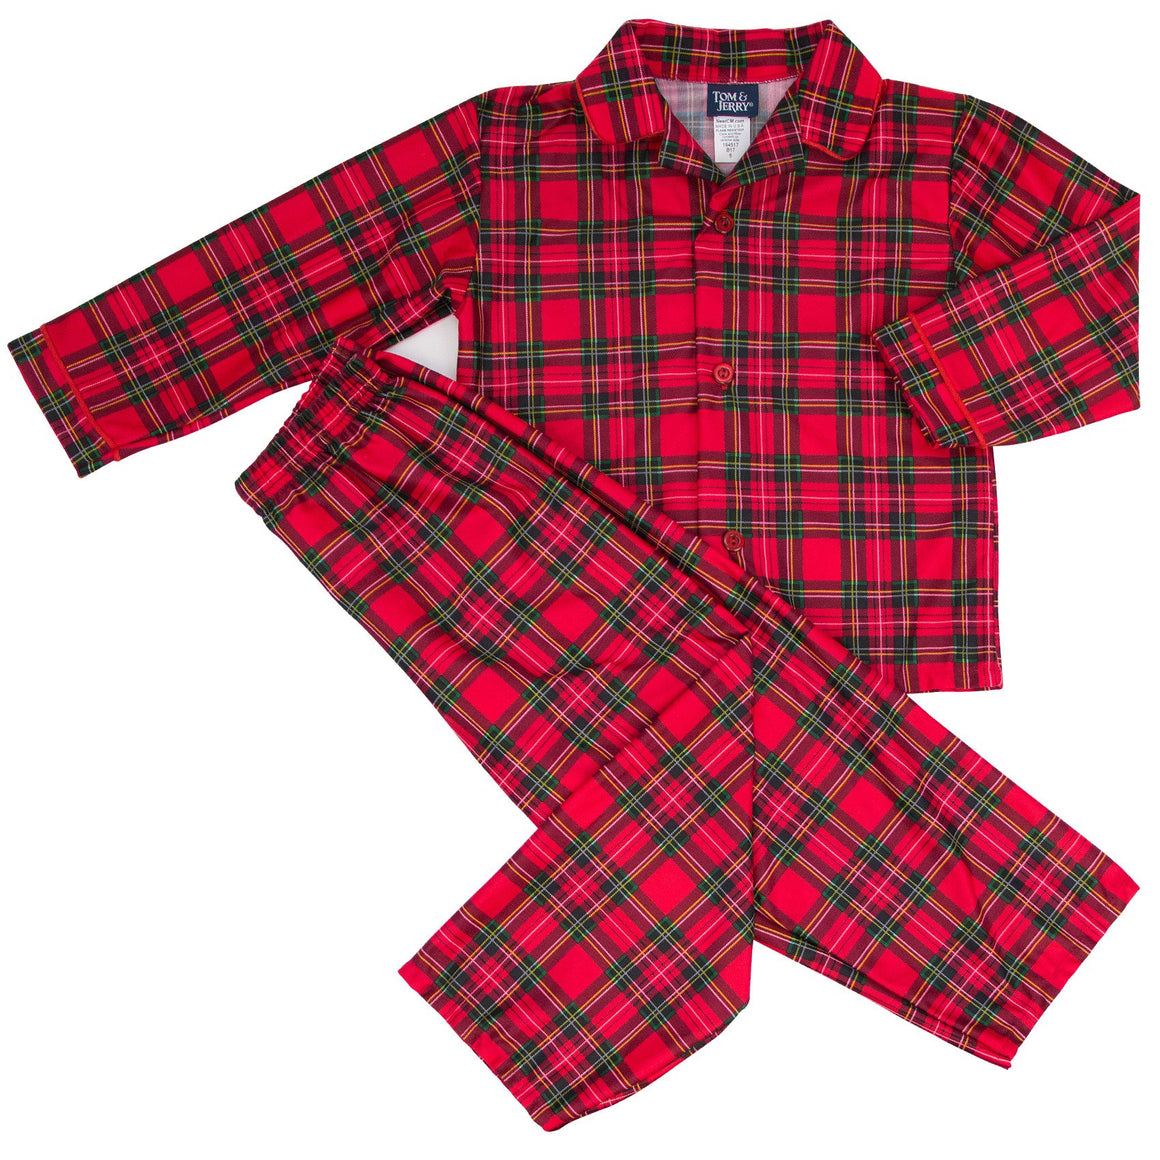 Tom & Jerry Sleepware Boys Holiday Plaid Tailored Pajama Set